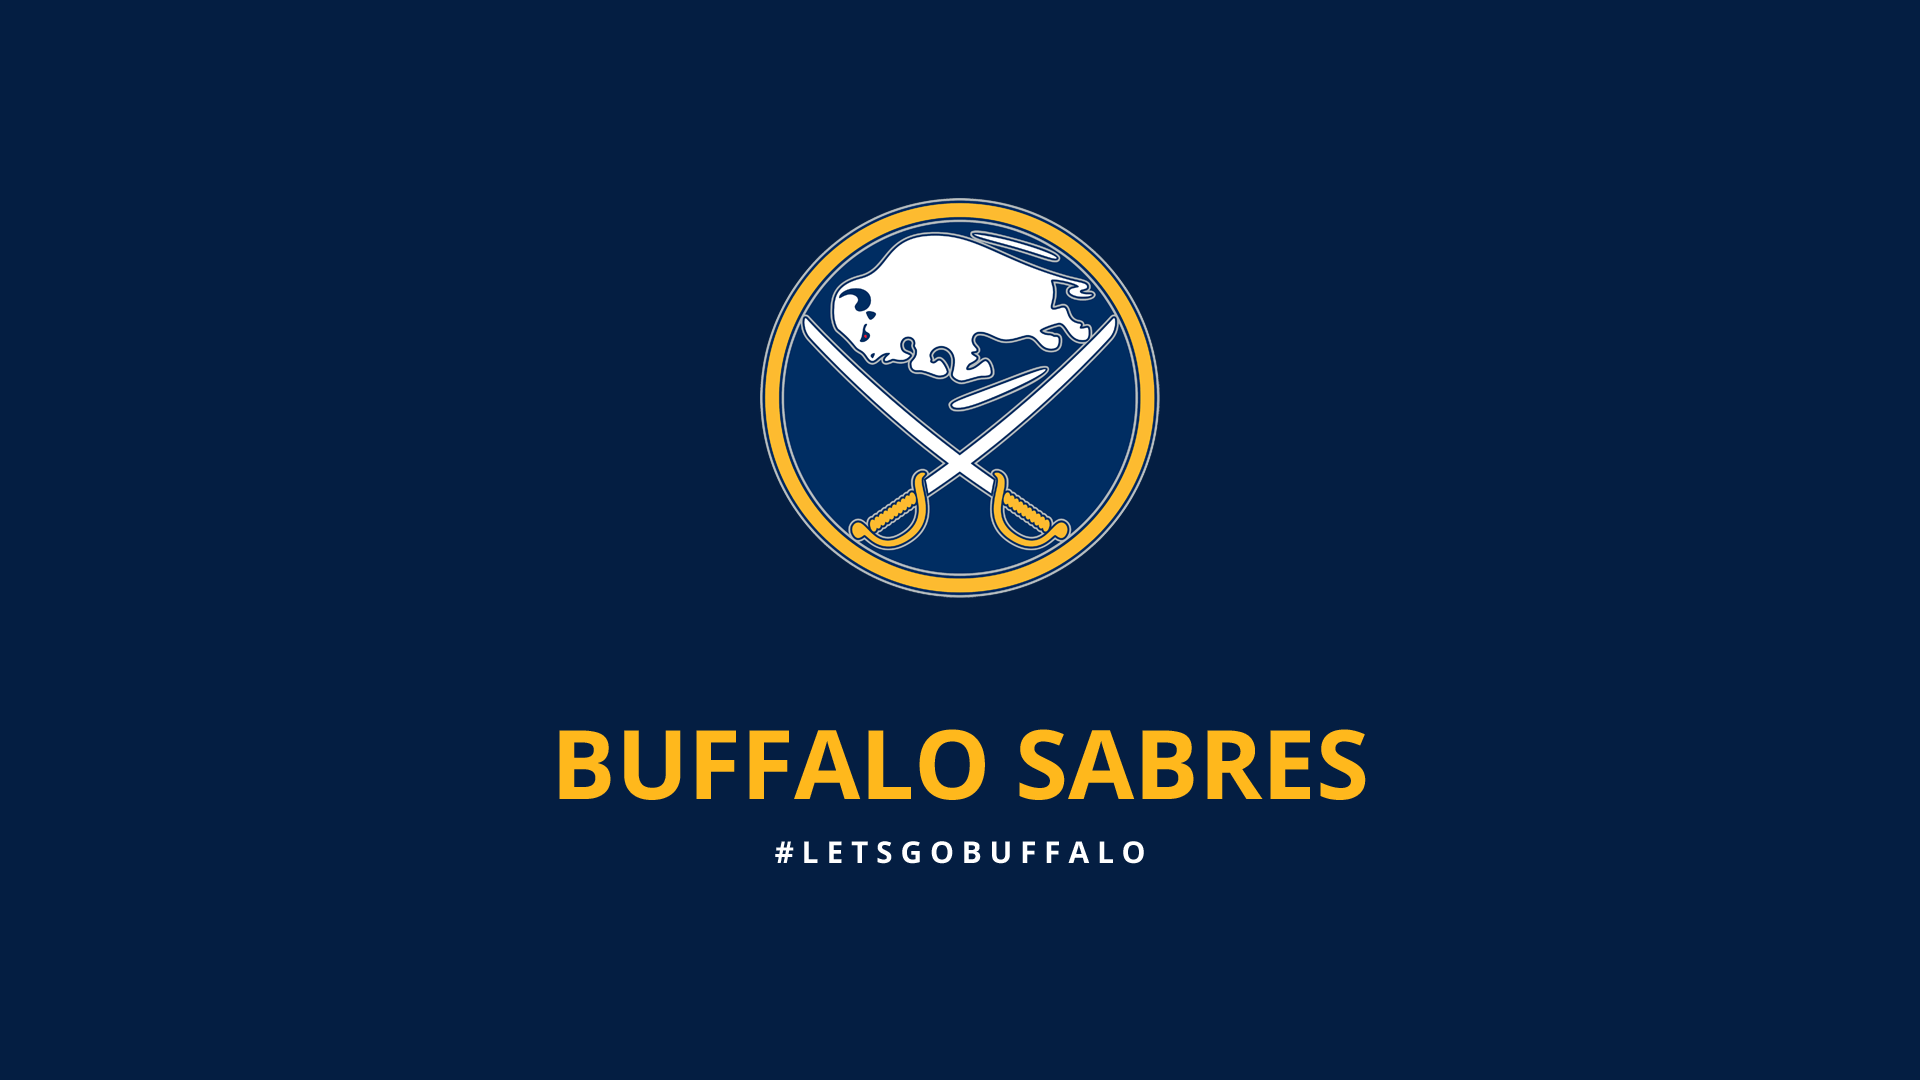 1920x1080 - Buffalo Sabres Wallpapers 2